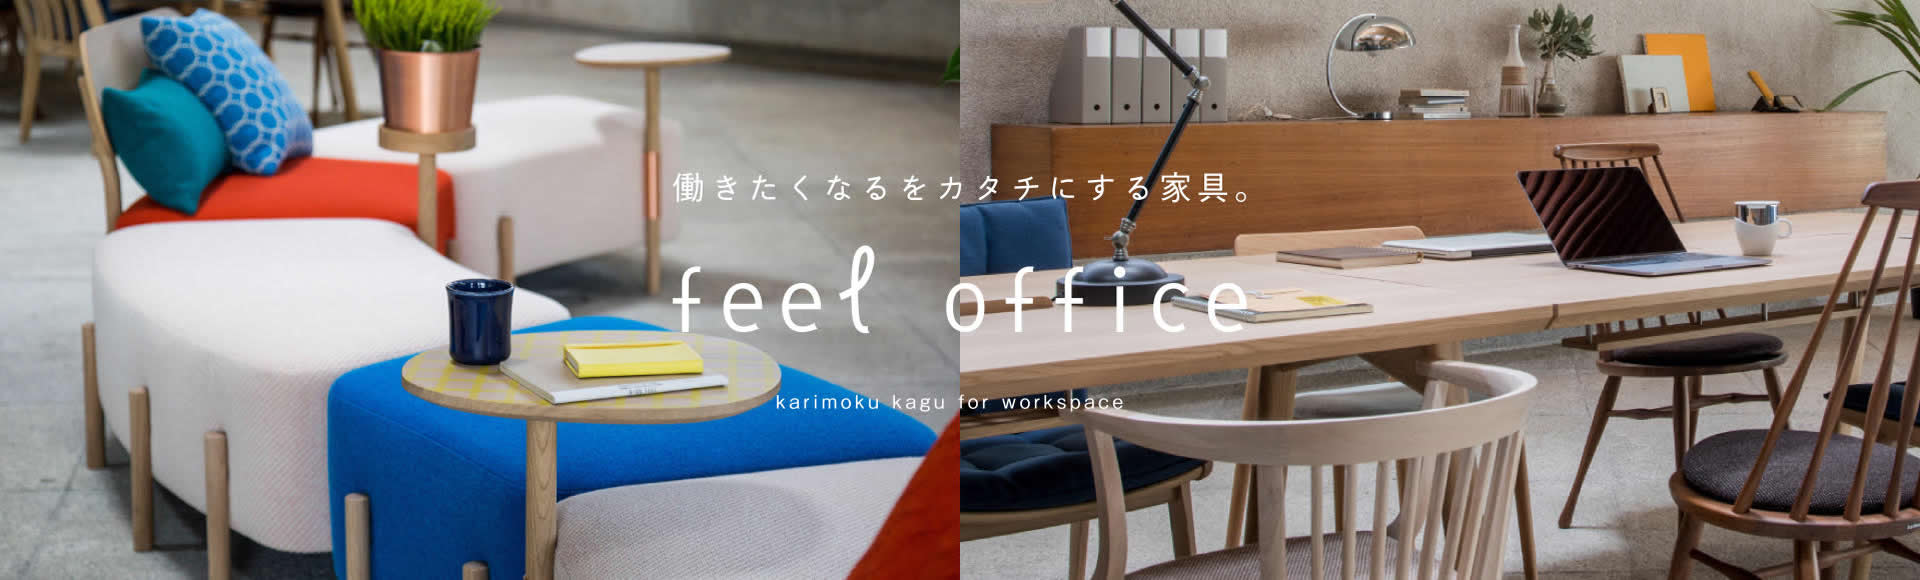 feeloffice